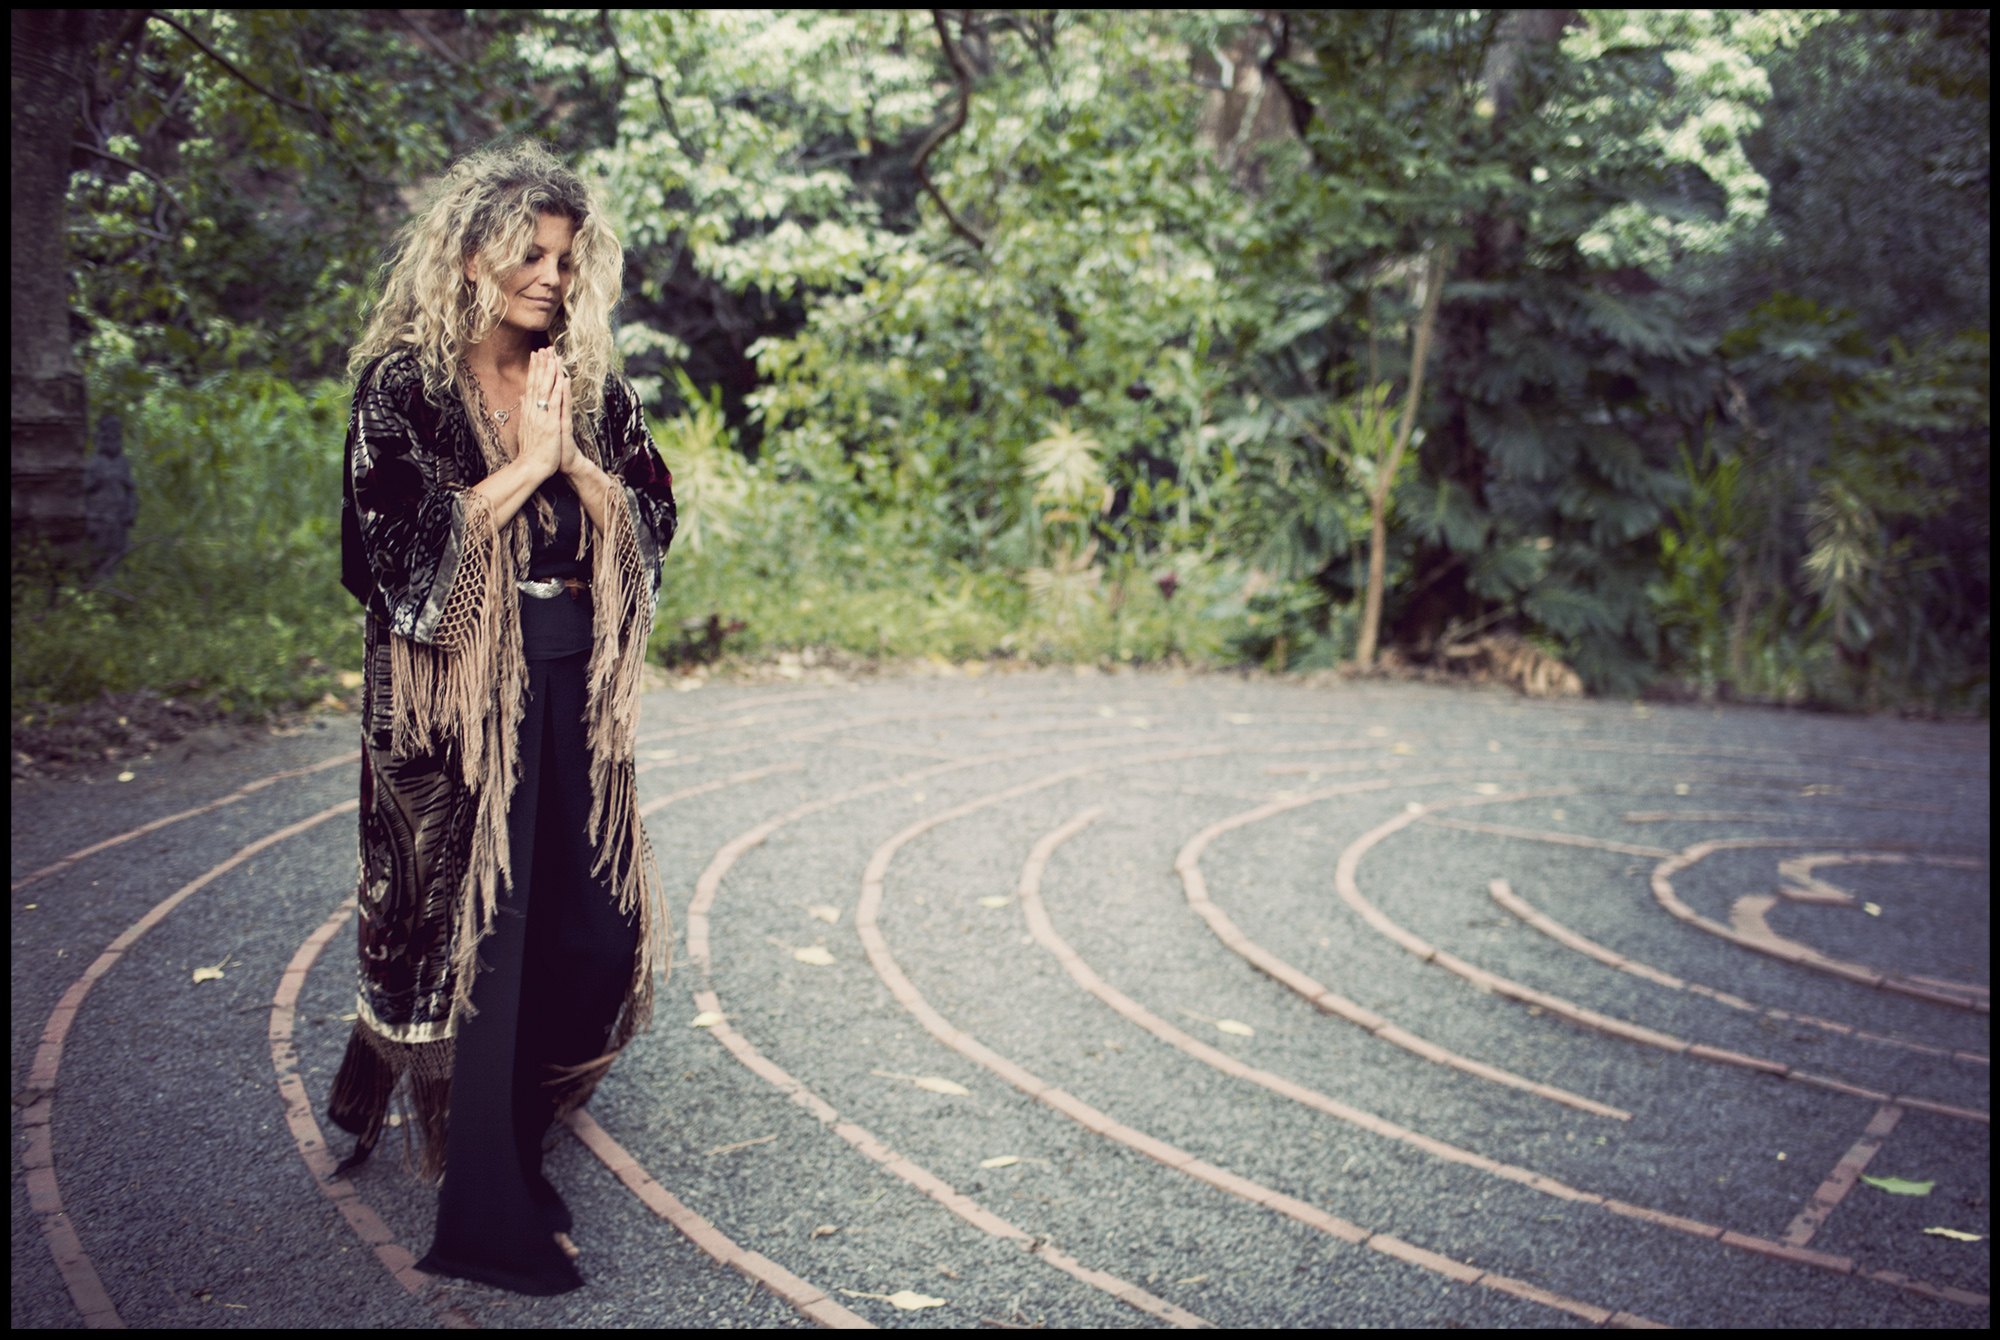 Eve Hogan, a practitioner for Spirit Quest, walks around a labyrinth at The Sacred Gardens of Maliko on Maui.  For Delta Sky Magazine.